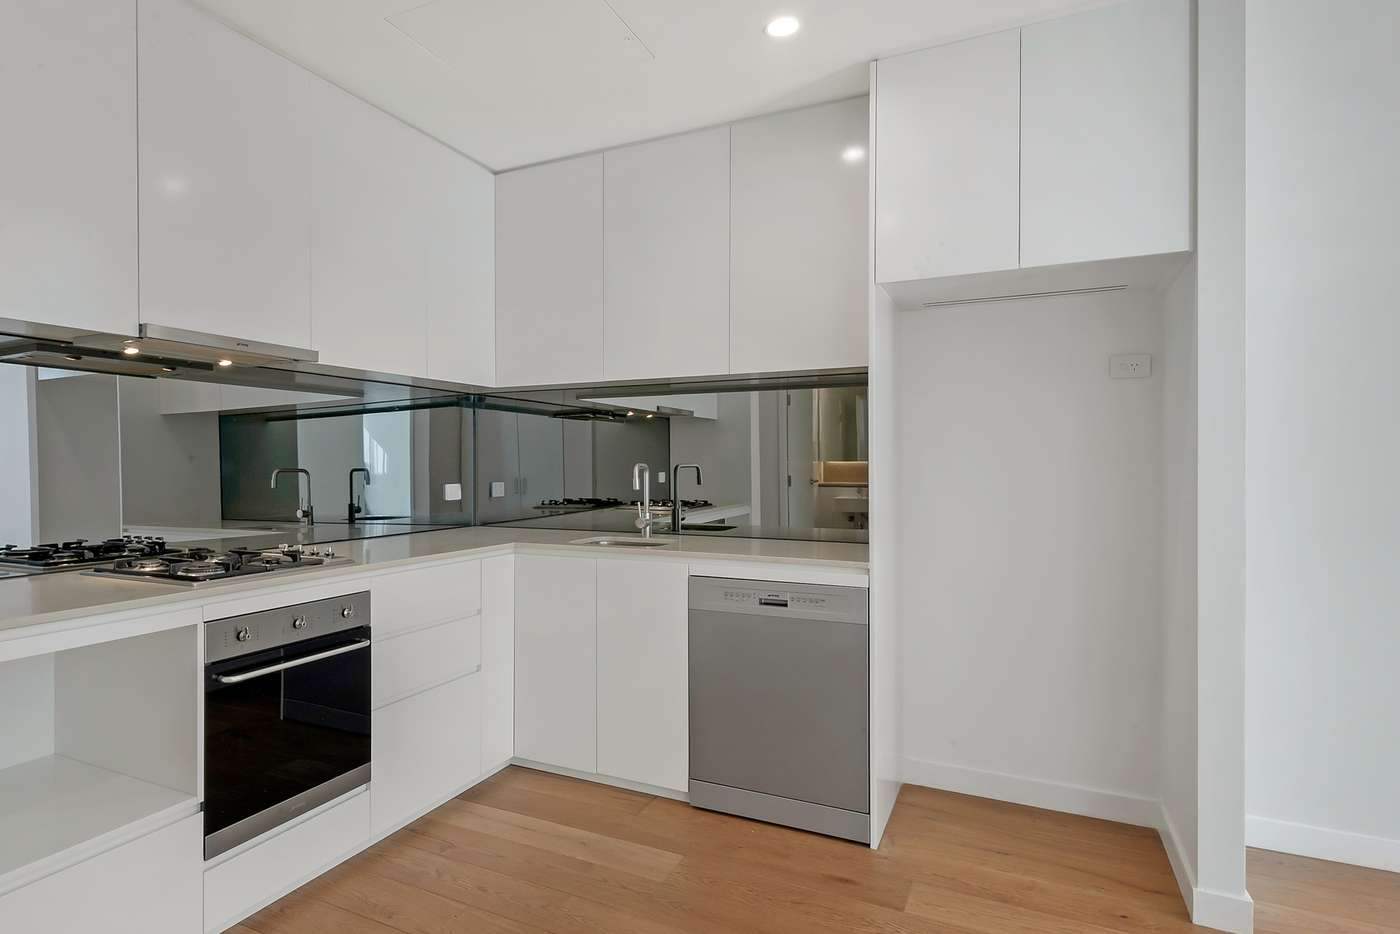 Main view of Homely apartment listing, 206/26 Cambridge Street, Epping NSW 2121